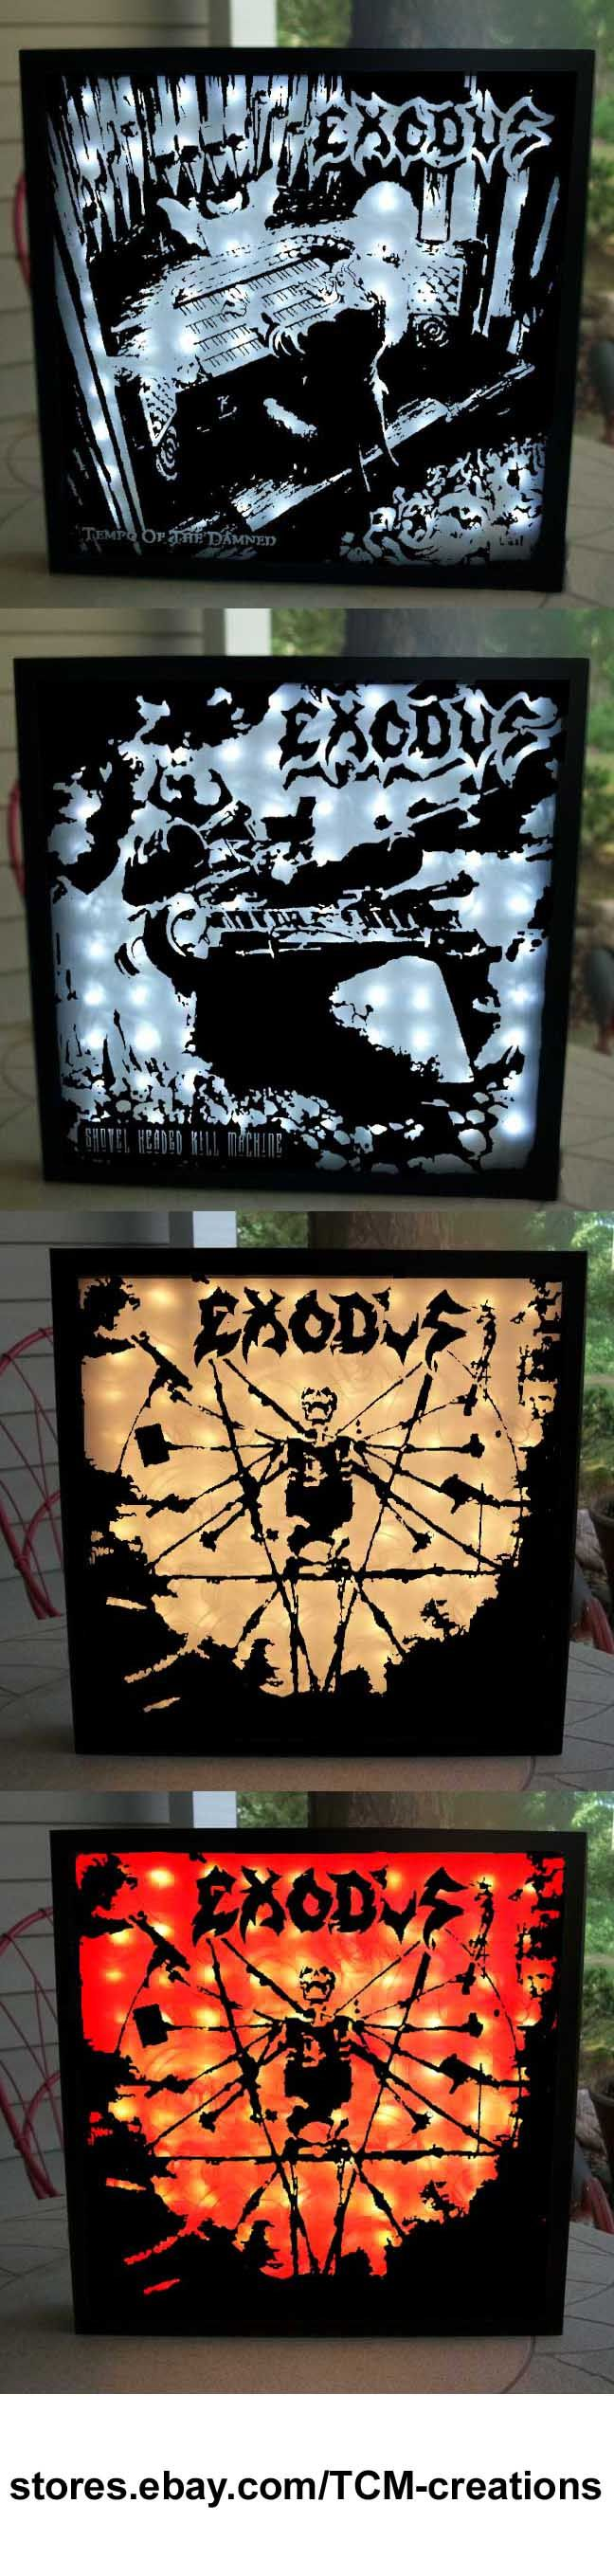 Exodus Shadow Boxes with LED lighting.  Bonded By Blood, Pleasures Of The Flesh, Fabulous Disaster, Impact Is Imminent, Force Of Habit, Tempo Of The Damned, Shovel Headed Kill Machine, The Atrocity Exhibition... Exhibit A, Exhibit B: The Human Condition, Blood In Blood Out, Kirk Hammett, Paul Baloff, Steve Souza, Rob Dukes, Gary Holt, Rick Hunolt, Lee Altus, Rob Mckillop, Michael Butler, Jack Gibson, Tom Hunting, John Tempesta, Paul Bostaph